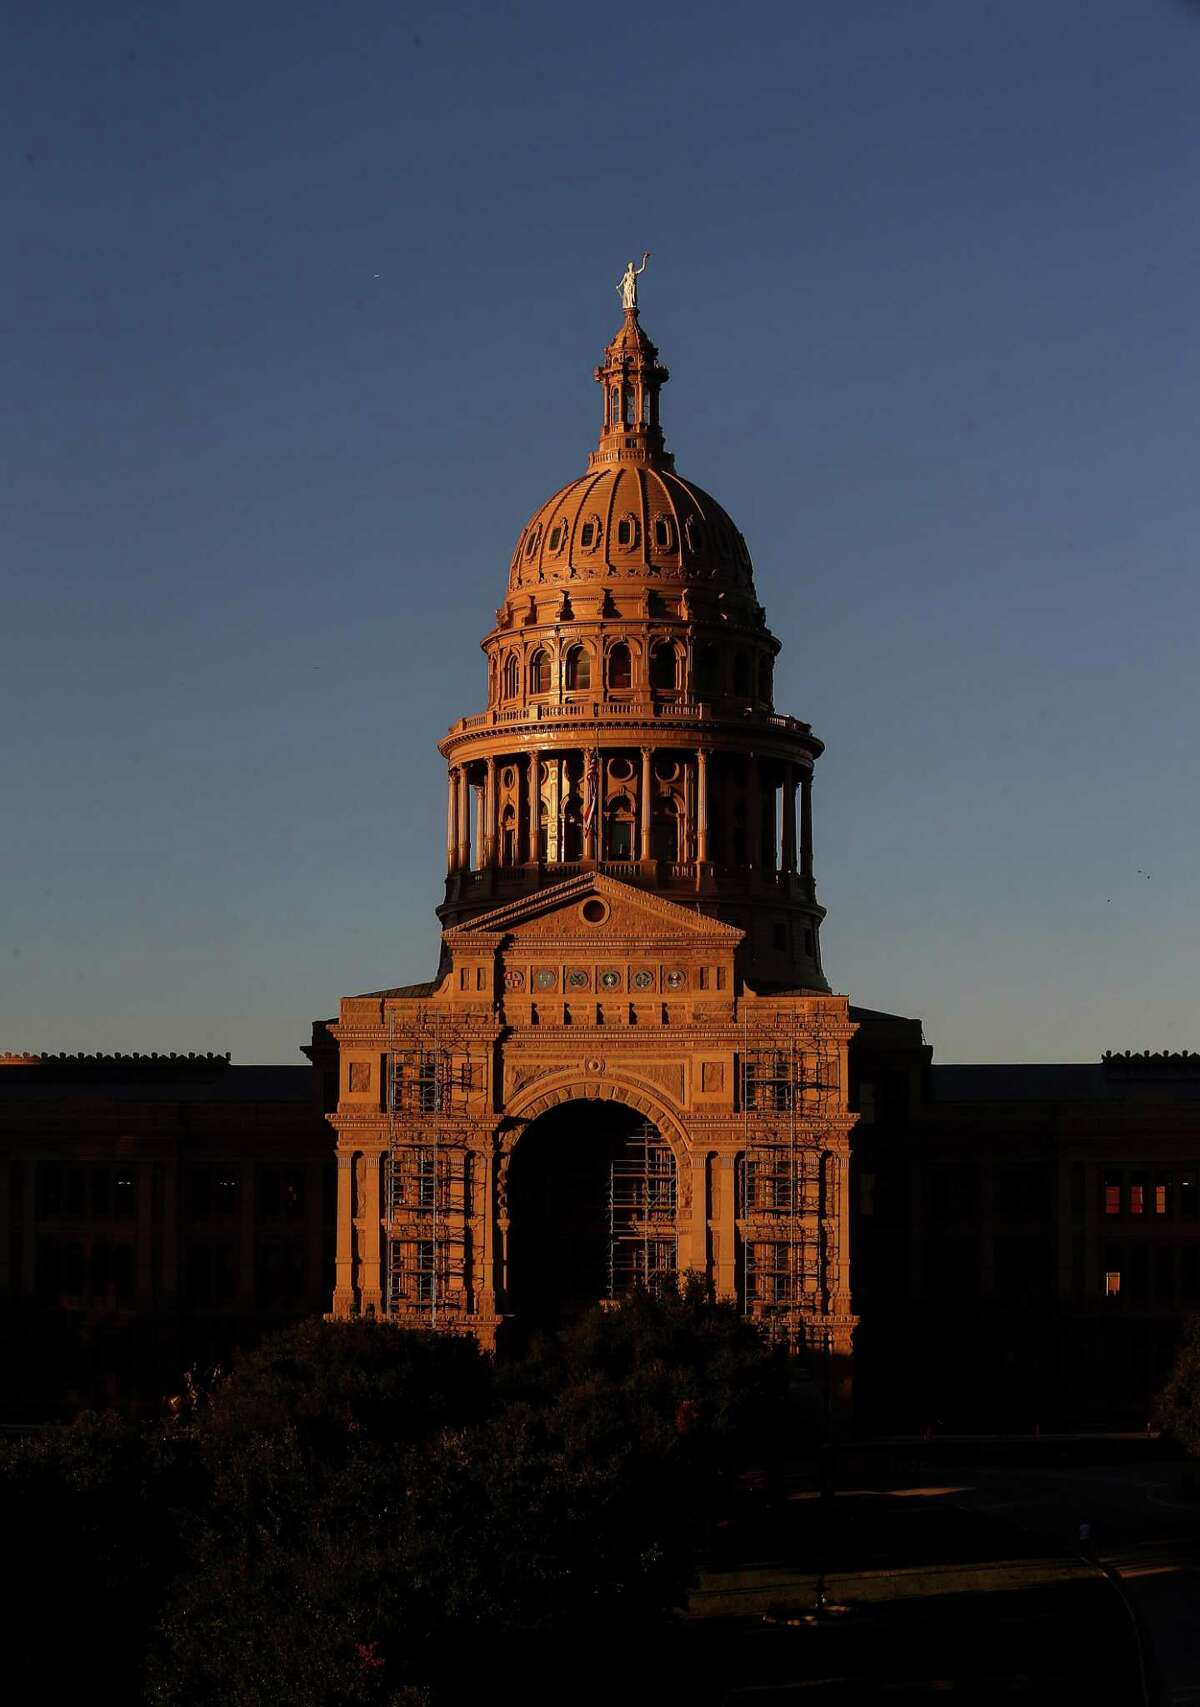 It's that time again. The Texas Legislature will be back in session, and medicaid expansion, medical marijuana and COVID-19 protections for teachers are top priorities.